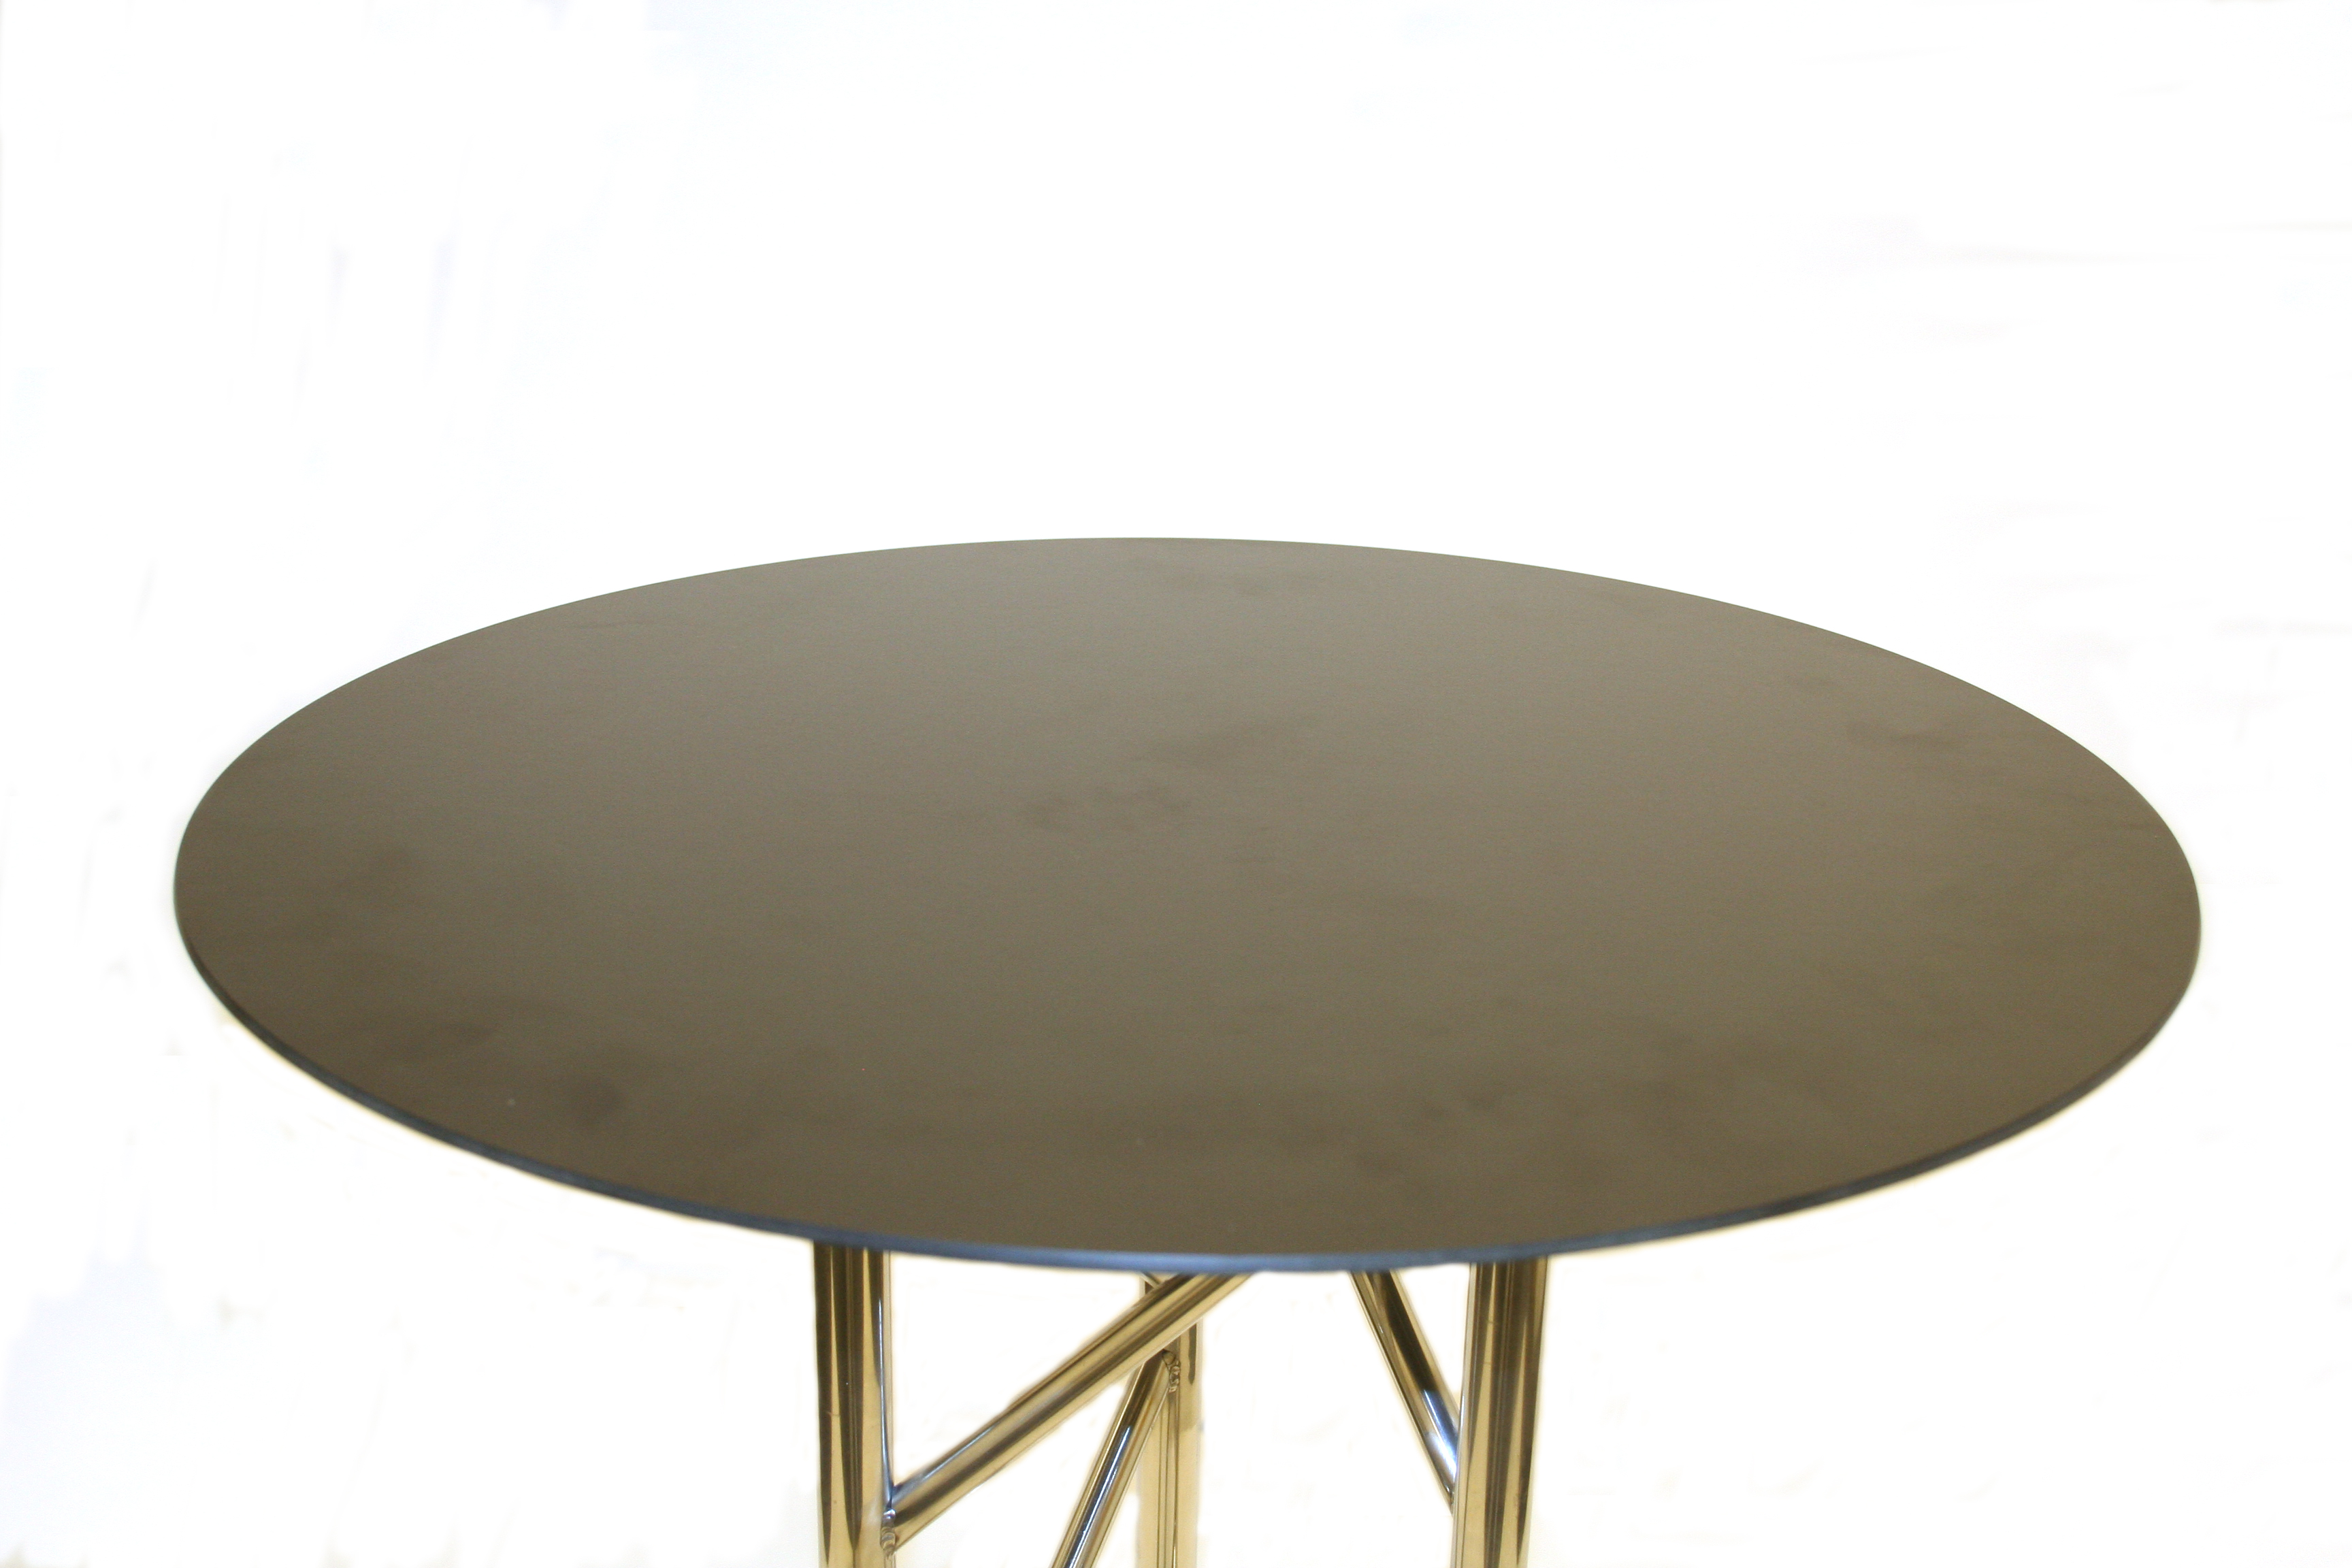 Table Top of the Chatsworth High Table - BE Furniture Sales